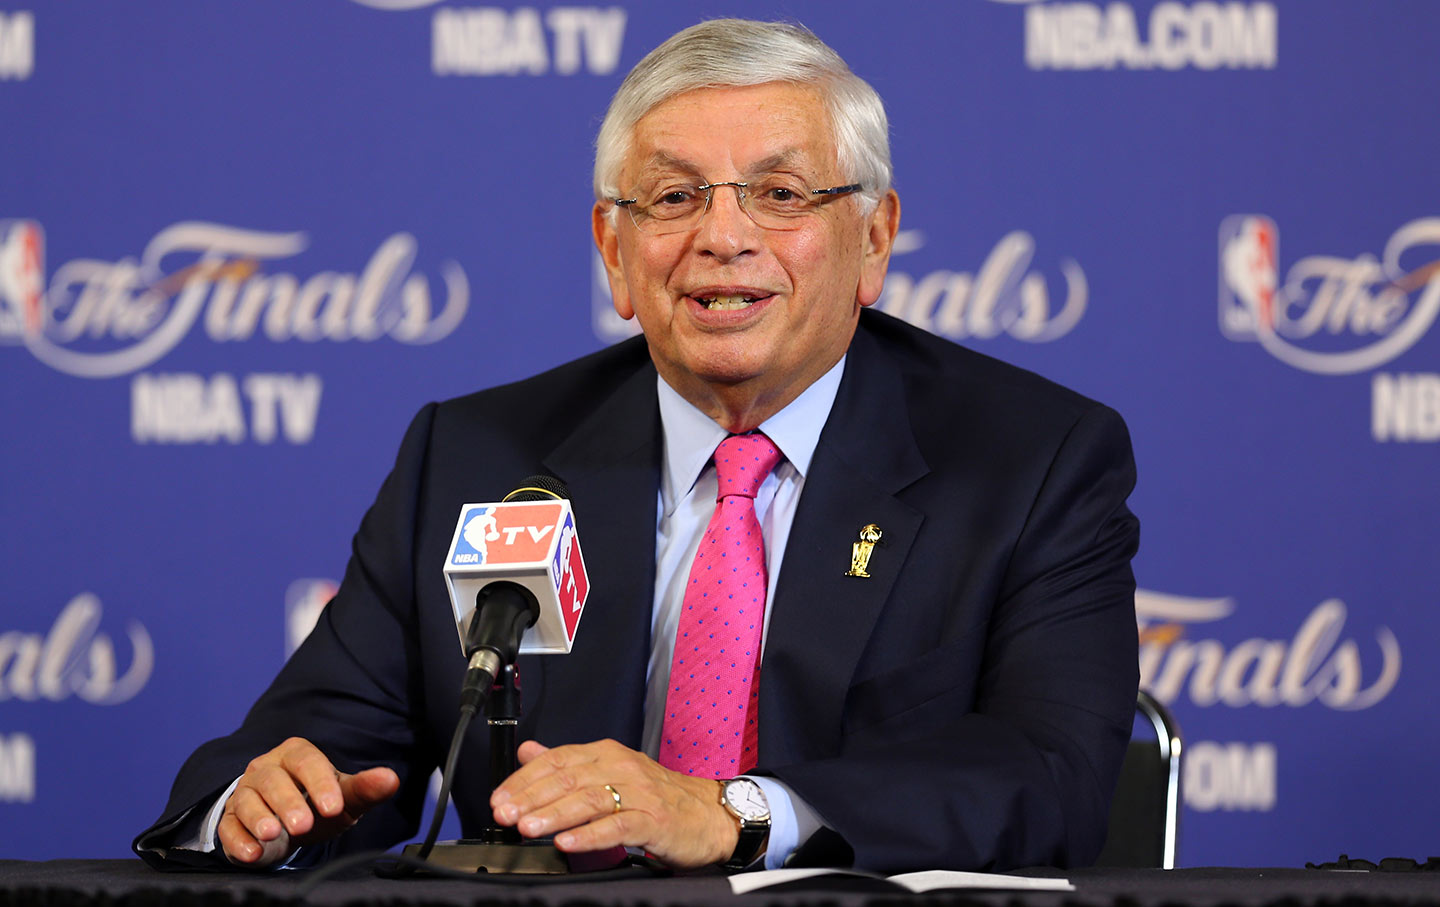 Towering, complex legacy of David Stern